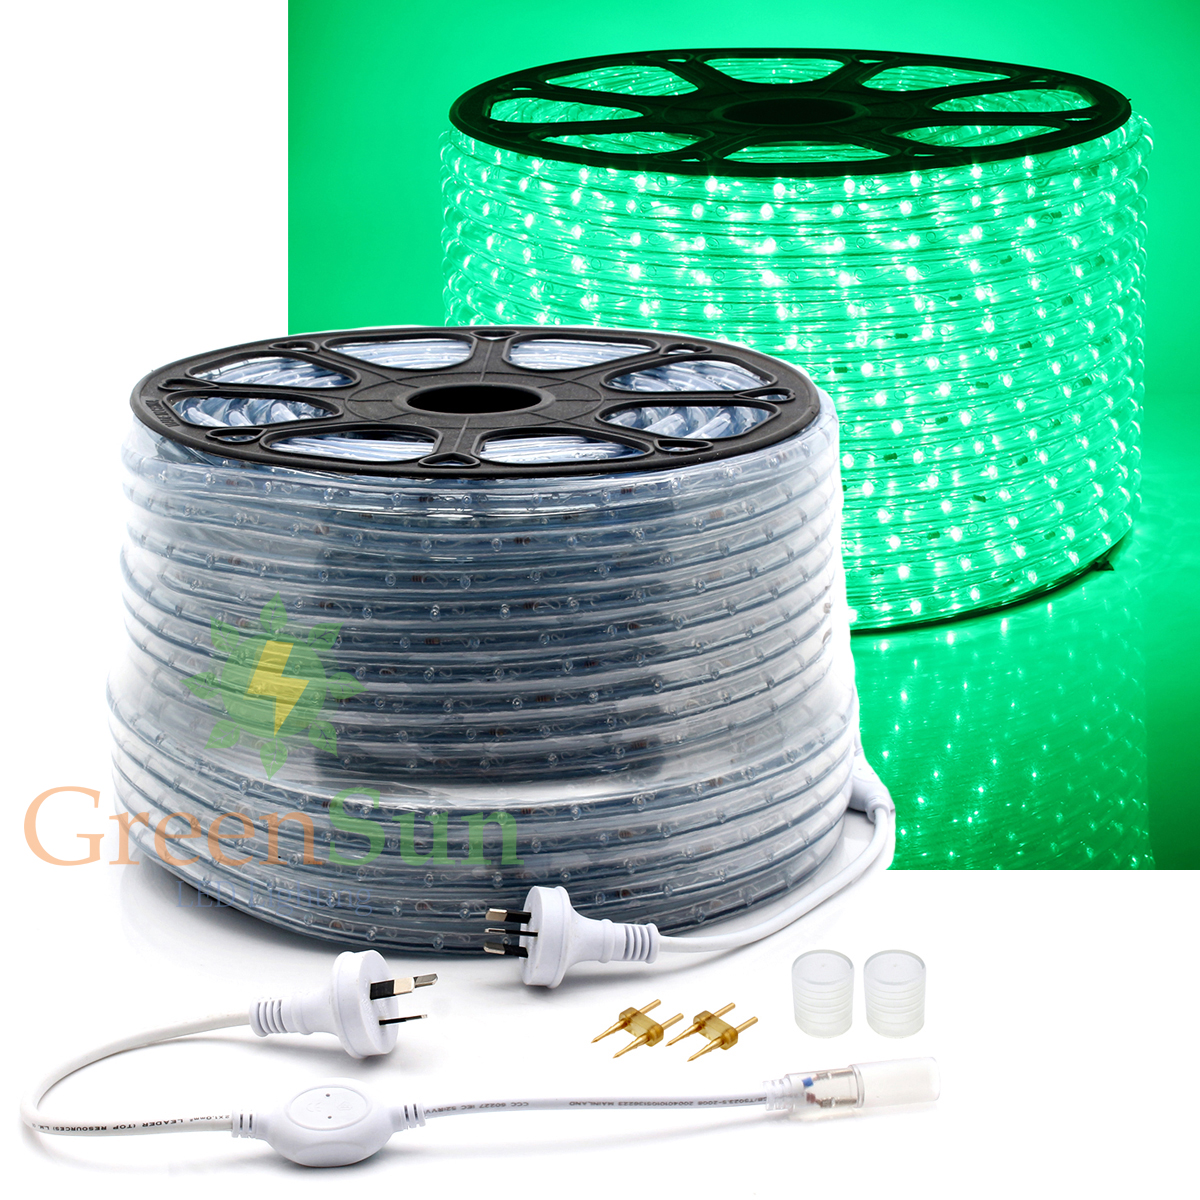 hight resolution of aliexpress com buy 20 50m green led strip light 36leds m 2 wire waterproof ip68 home garden xmas lamp led strip light with power line from reliable led